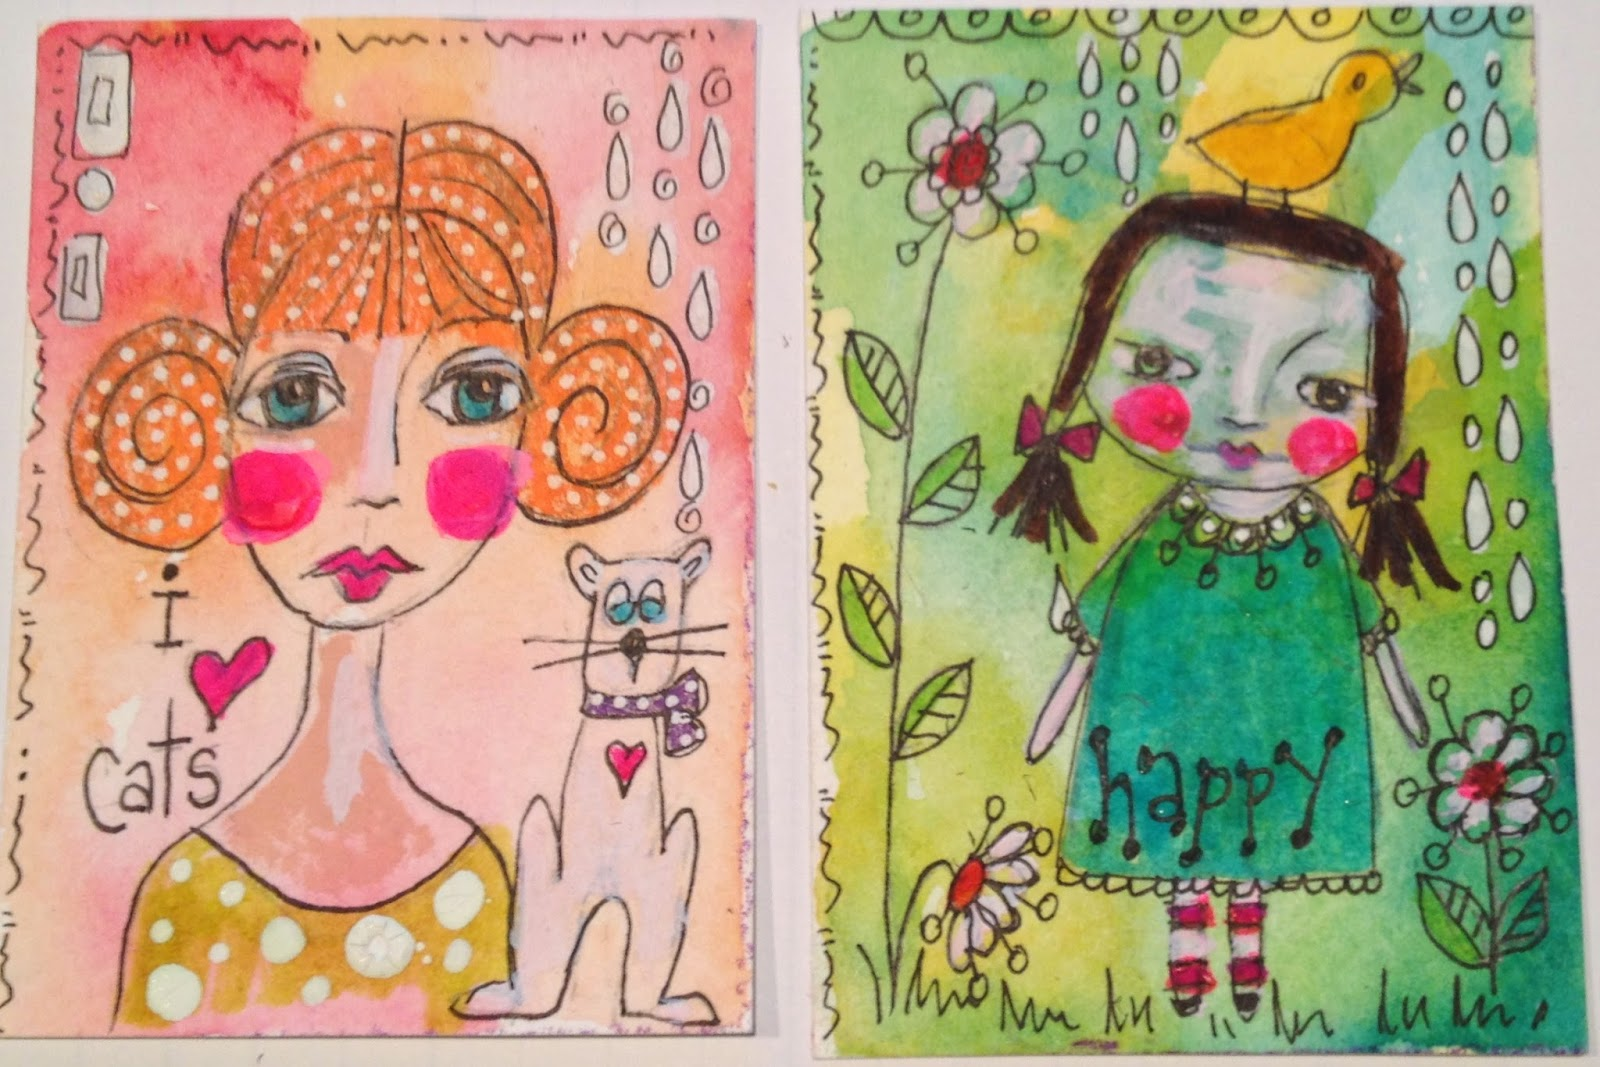 ATC cards by Jane McMahon Lazenby